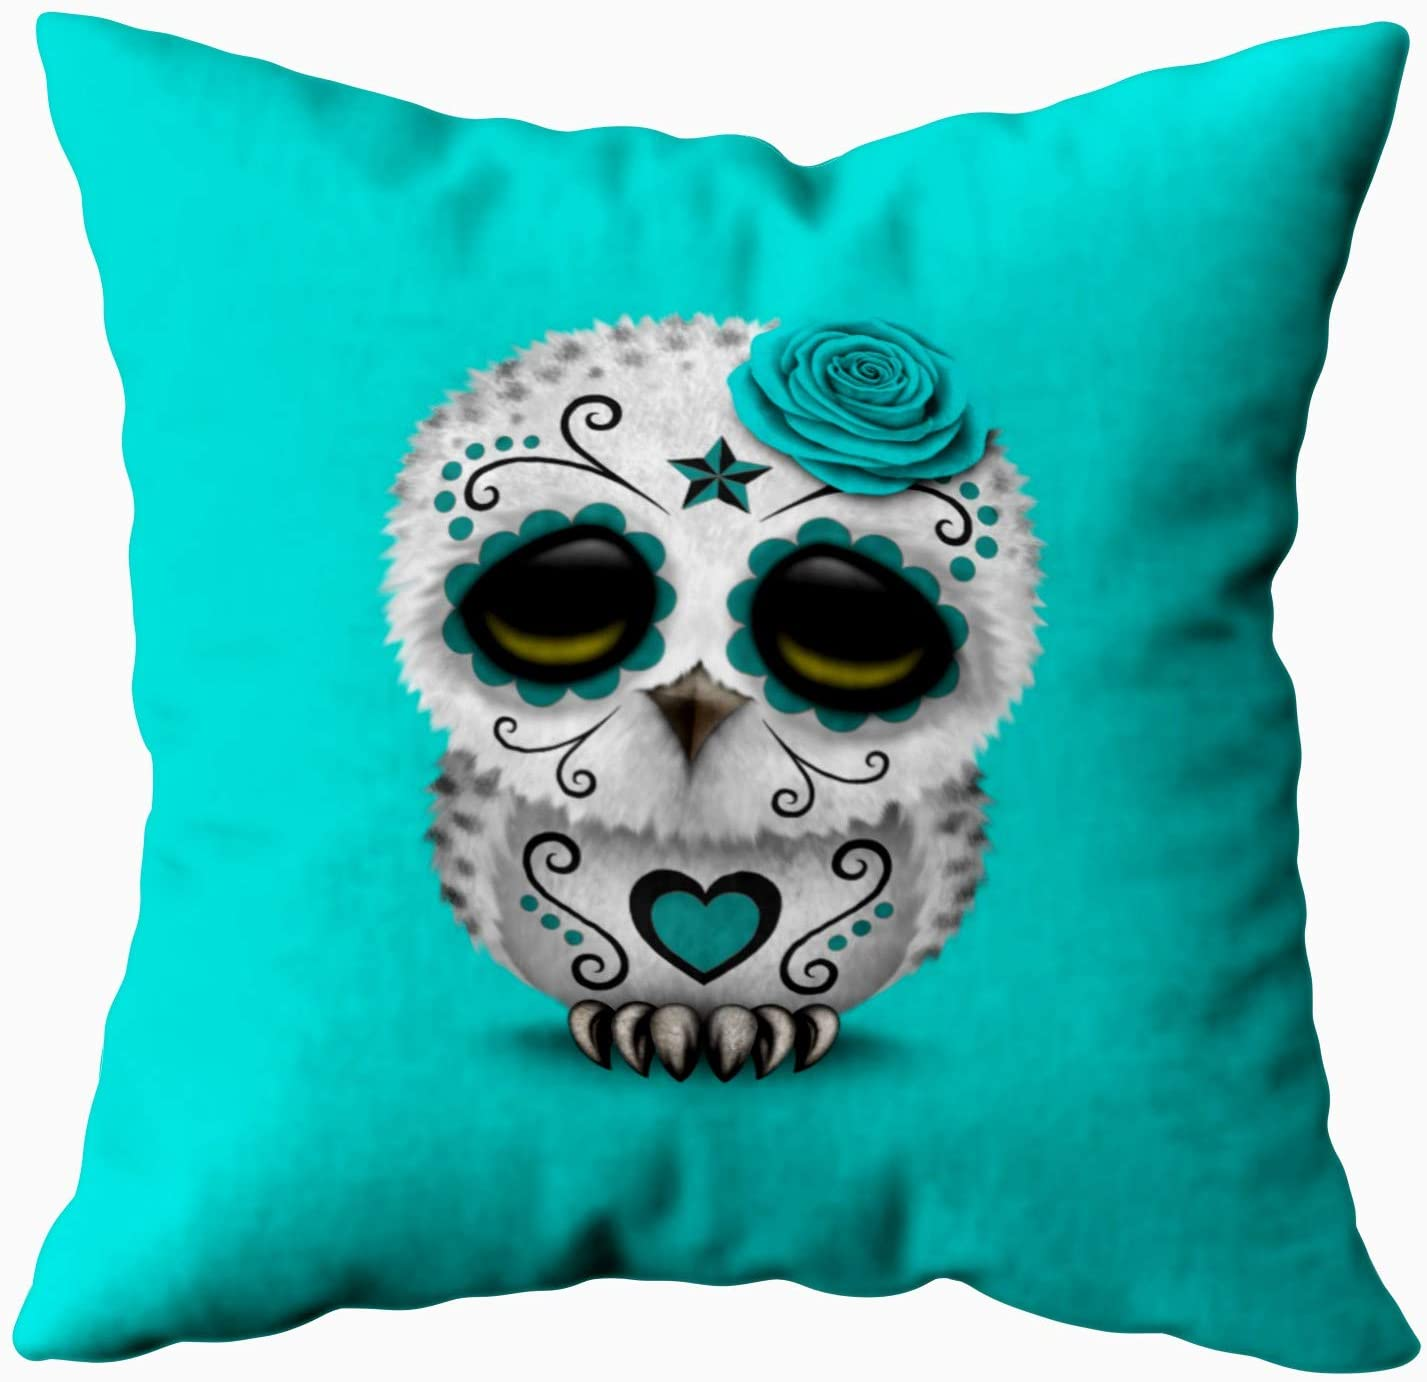 Musesh Accent Cute Teal Day of The Dead Sugar Skull owl Blue Cushions Case Throw Pillow Cover for Sofa Home Decorative Pillowslip Gift Ideas Household Pillowcase Zippered Pillow Covers 16X16Inch